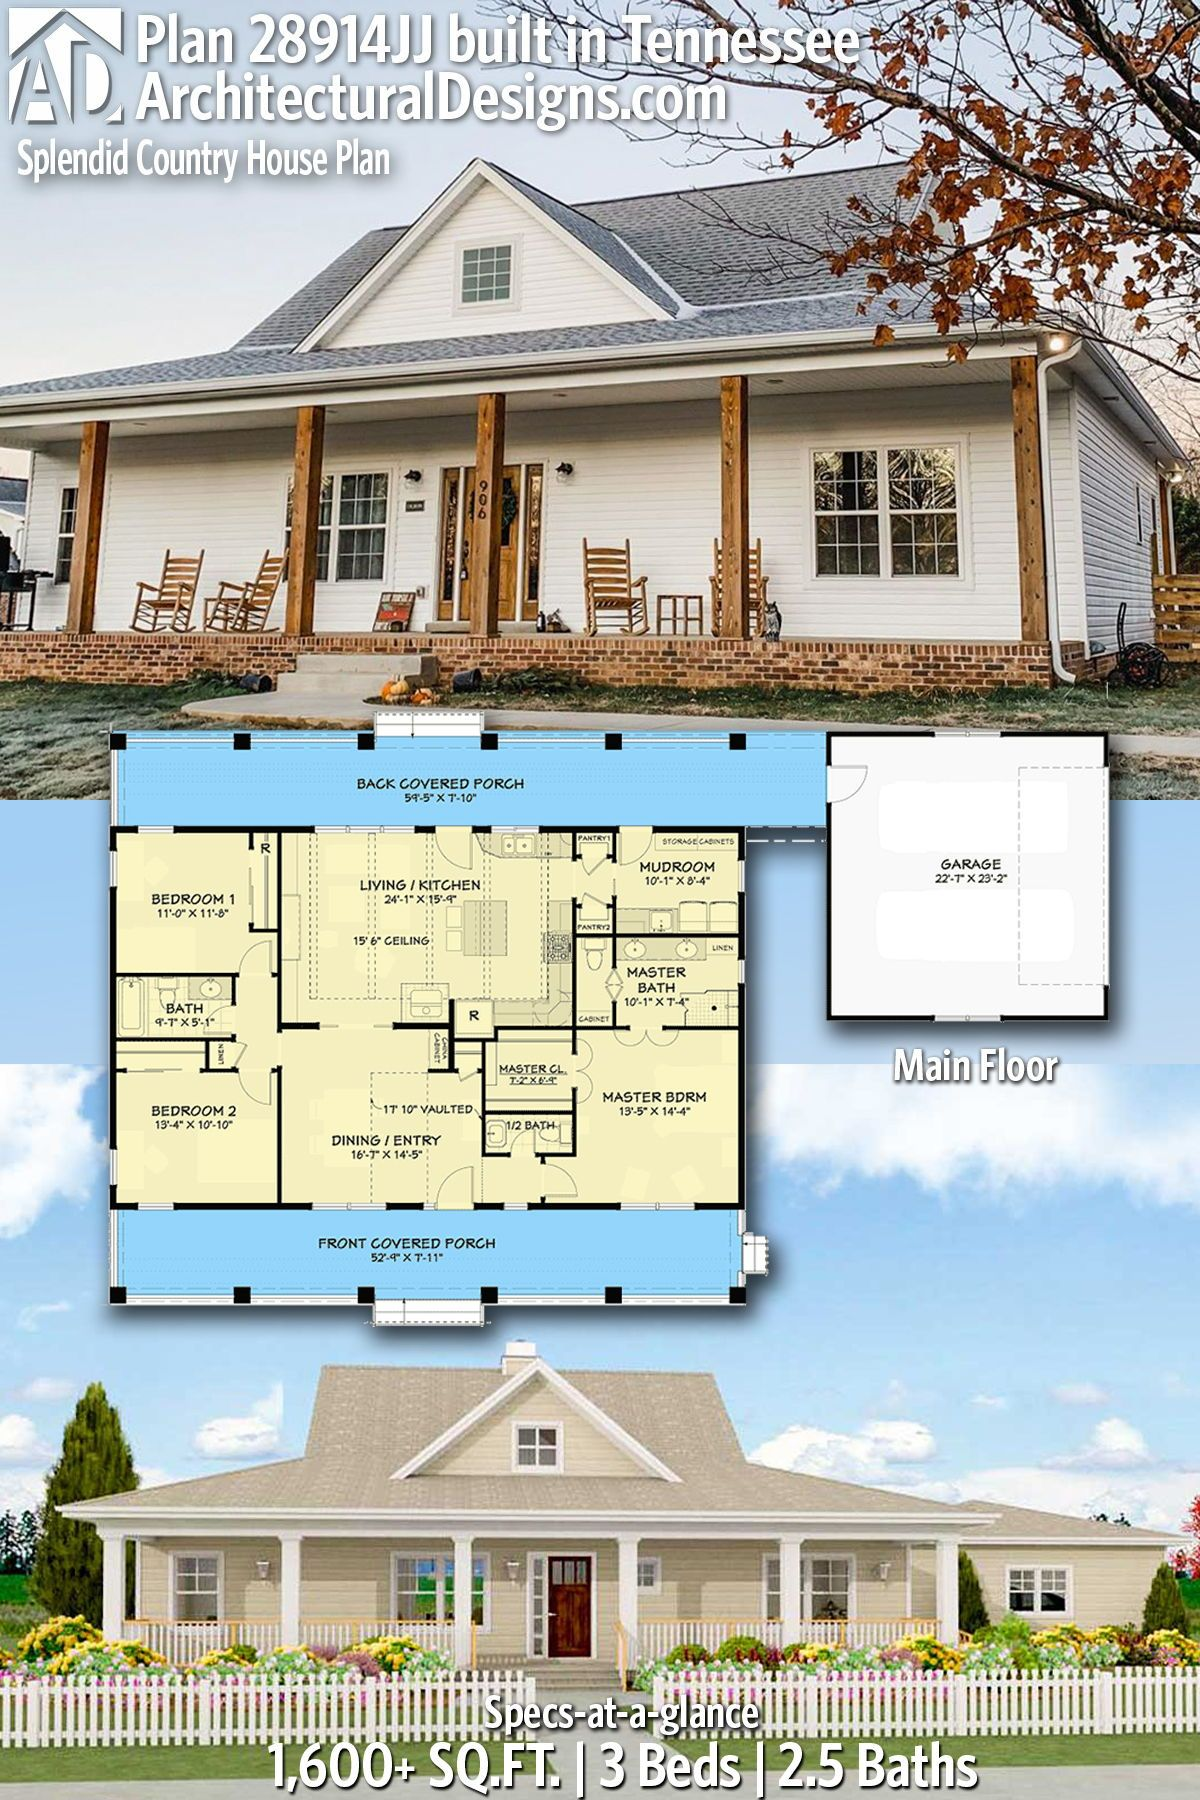 Plan 28914jj Splendid Country Farmhouse Home Plan In 2020 House Plans Farmhouse Barn House Plans Farmhouse Plans